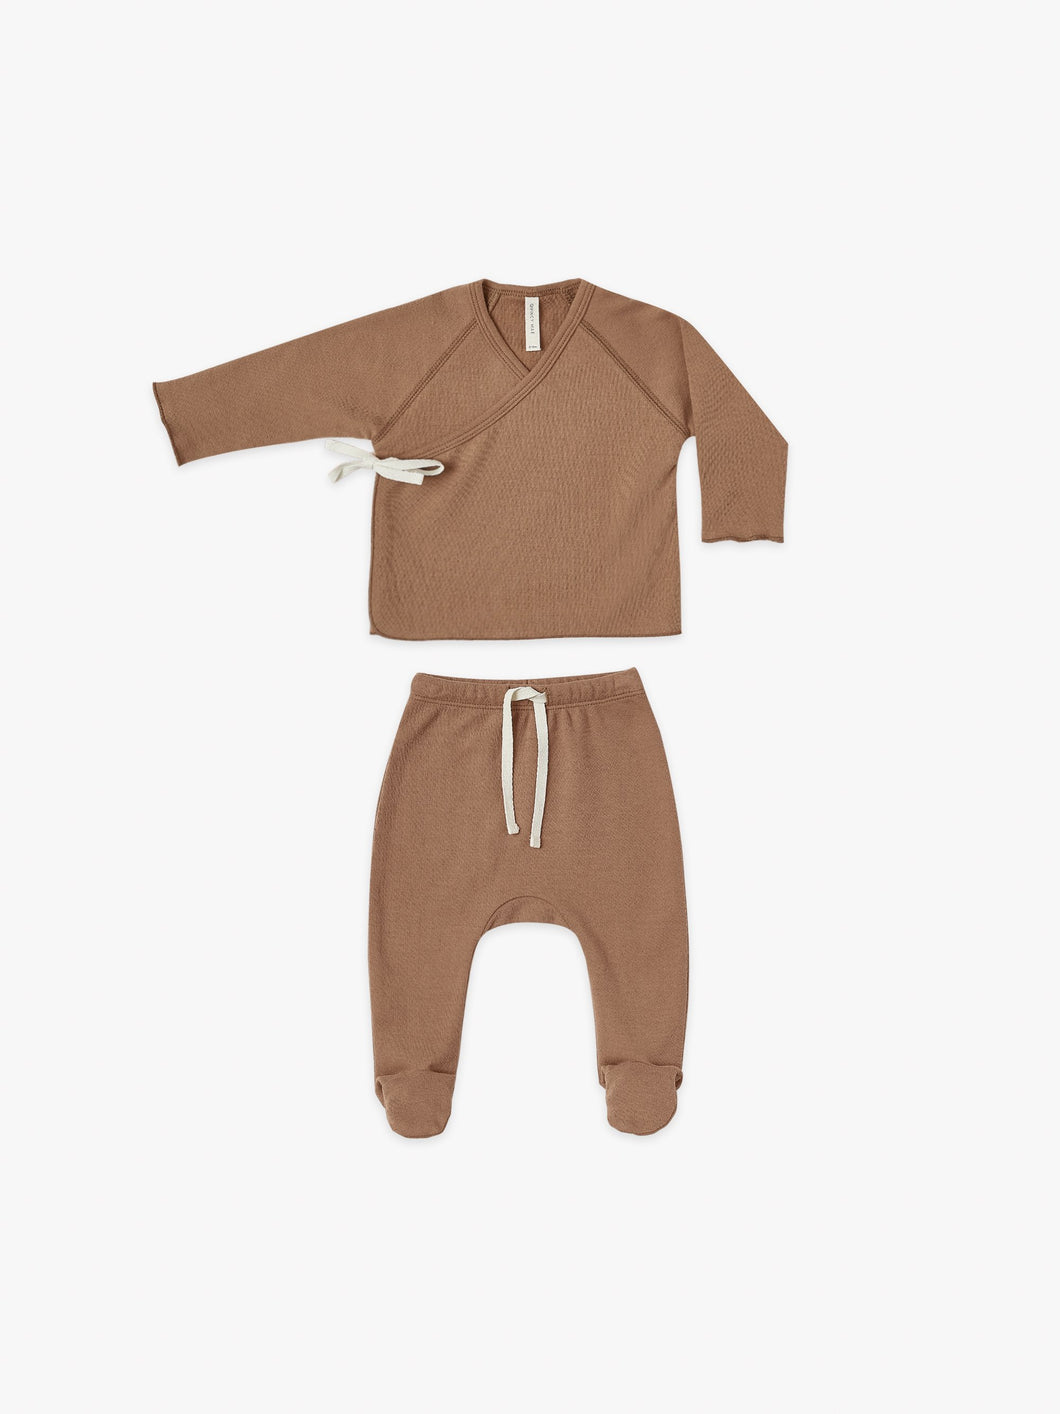 Quincy Mae Kimono Top & Footed Pant Set - Rust